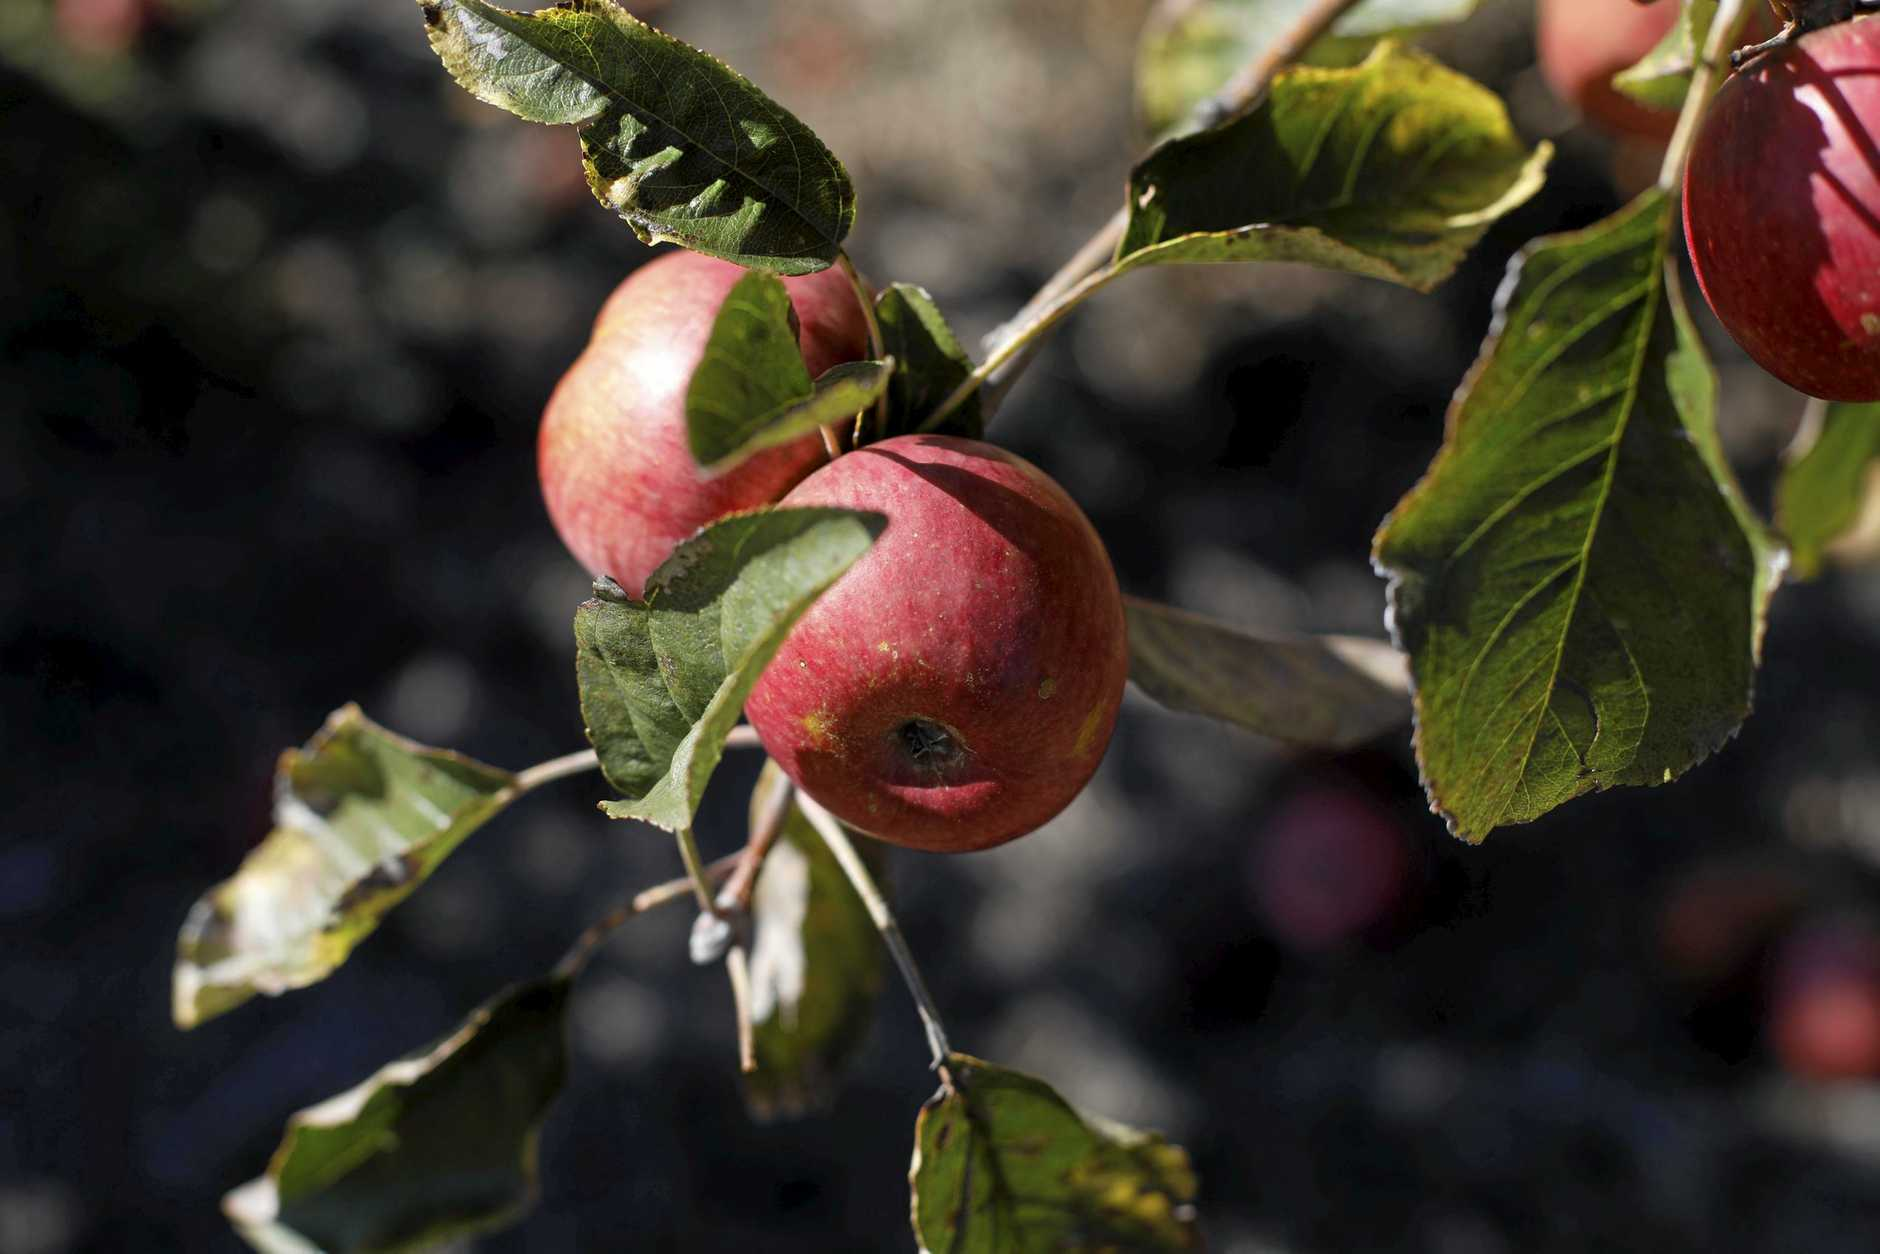 There are about 30 apple varieties at Sutton's farm in Applethorpe.